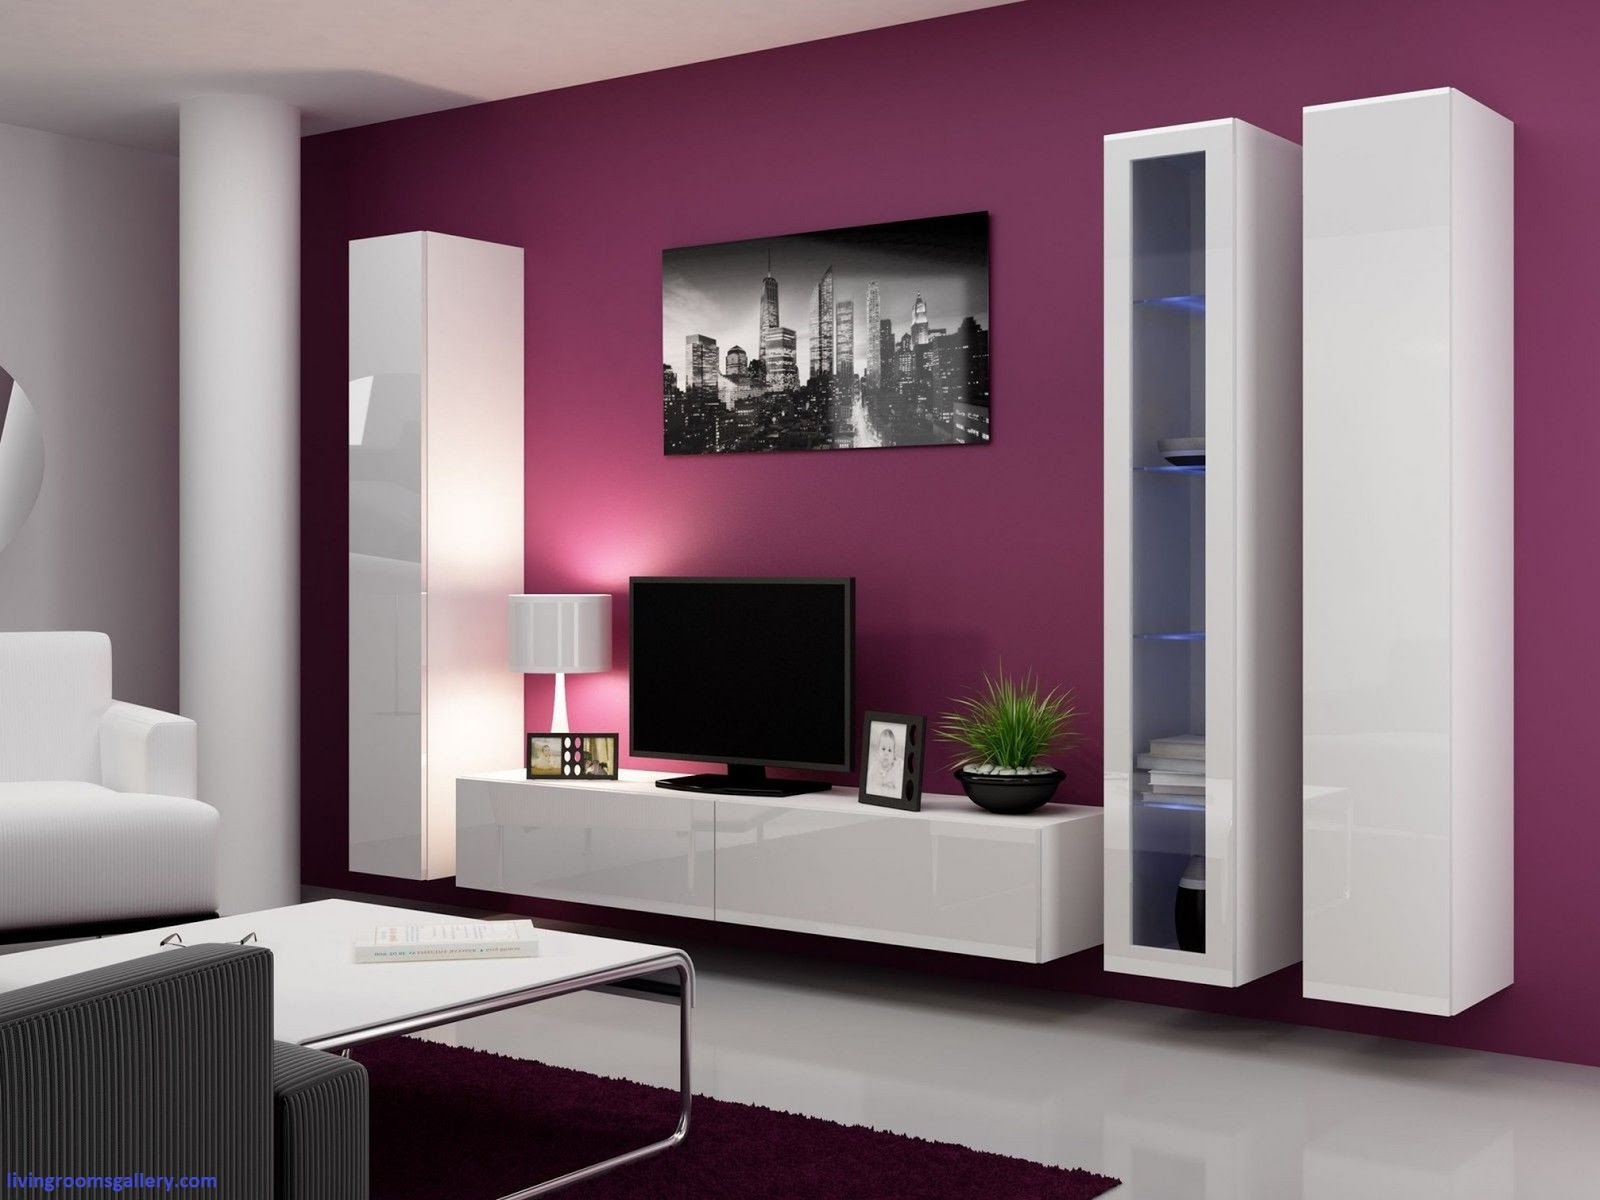 Modern TV cabinet Wall units furniture designs ideas. Modern Luxurious Cupboard Designs In Living Room 2016   Living